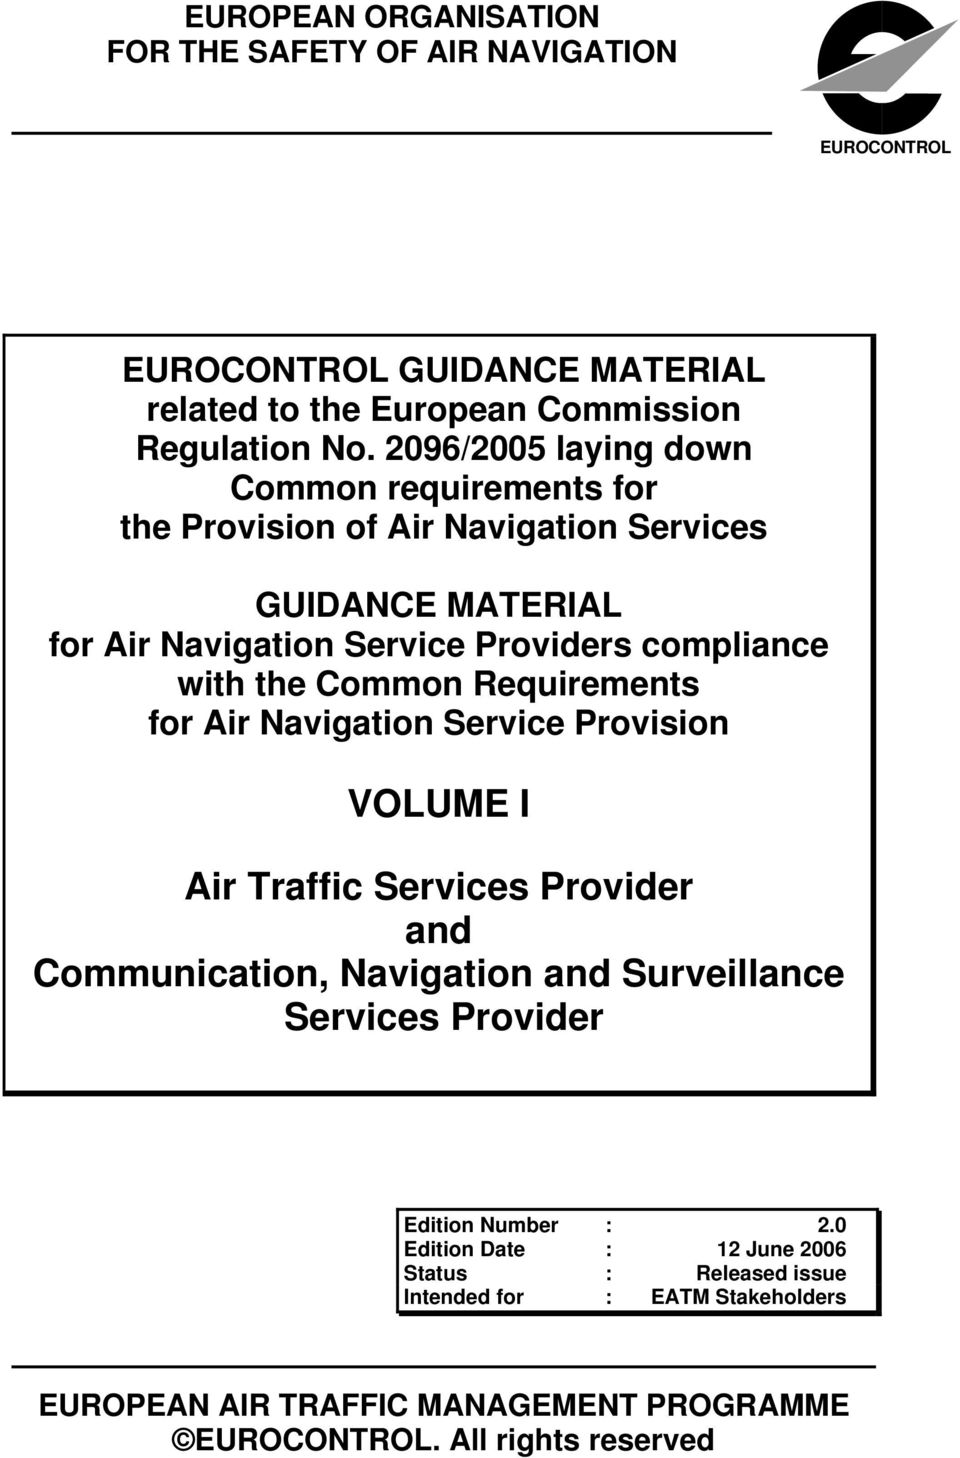 Common Requirements for Air Navigation Service Provision VOLUME I Air Traffic Services Provider and Communication, Navigation and Surveillance Services Provider